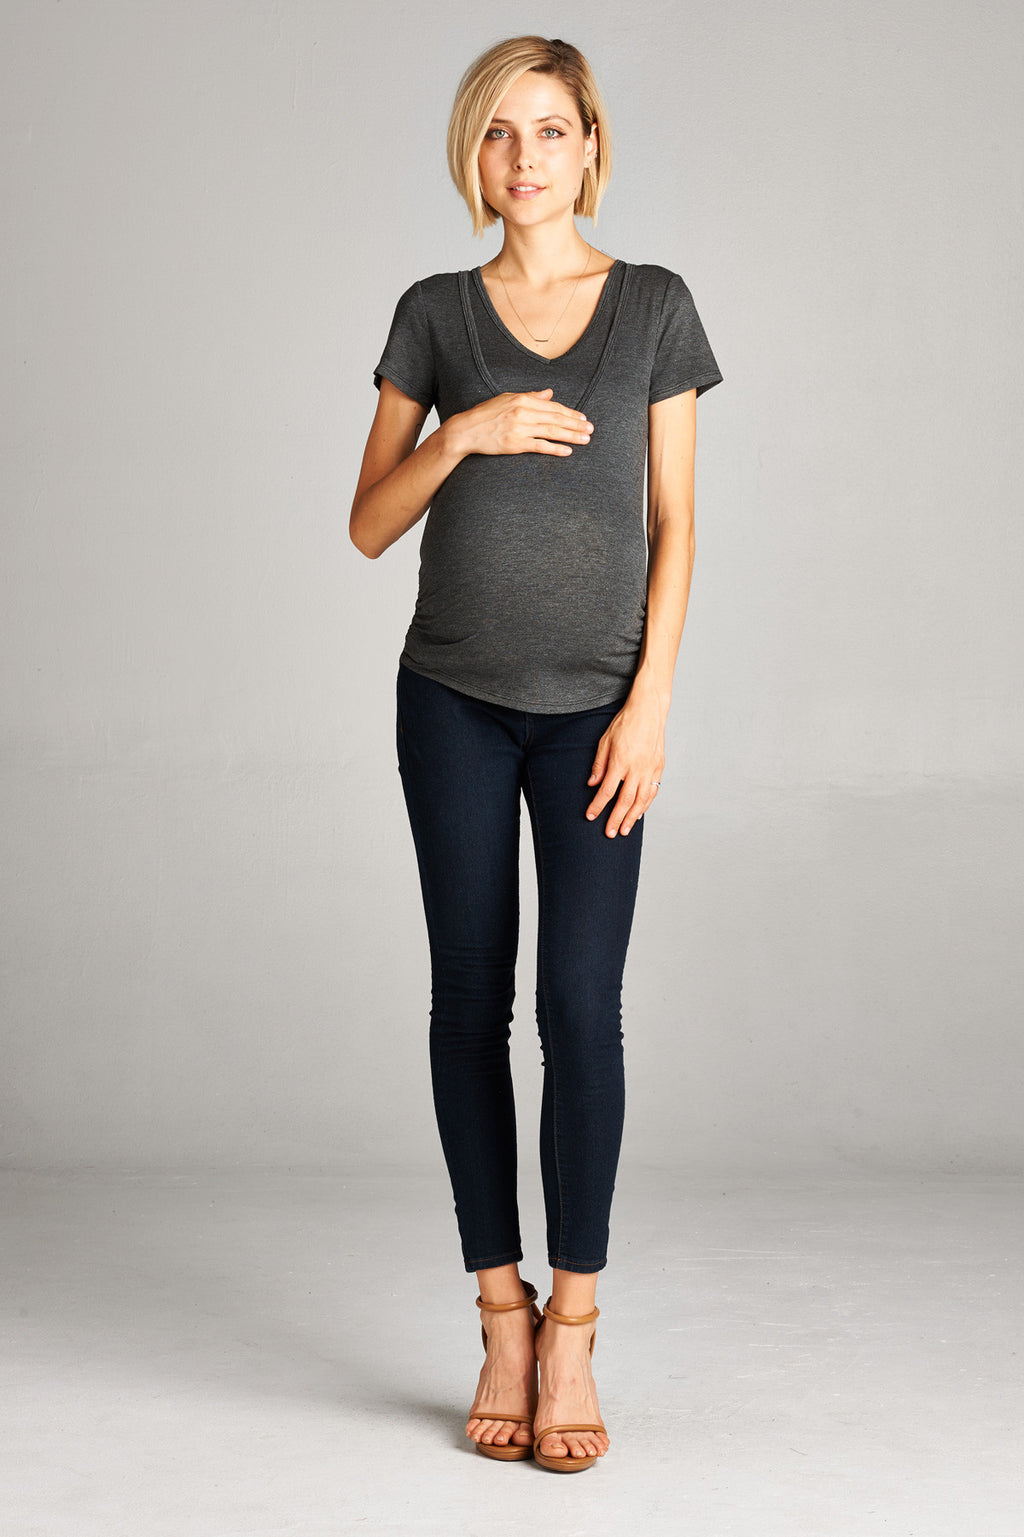 V-Neck Double Layer Nursing and Maternity Top - Mommylicious